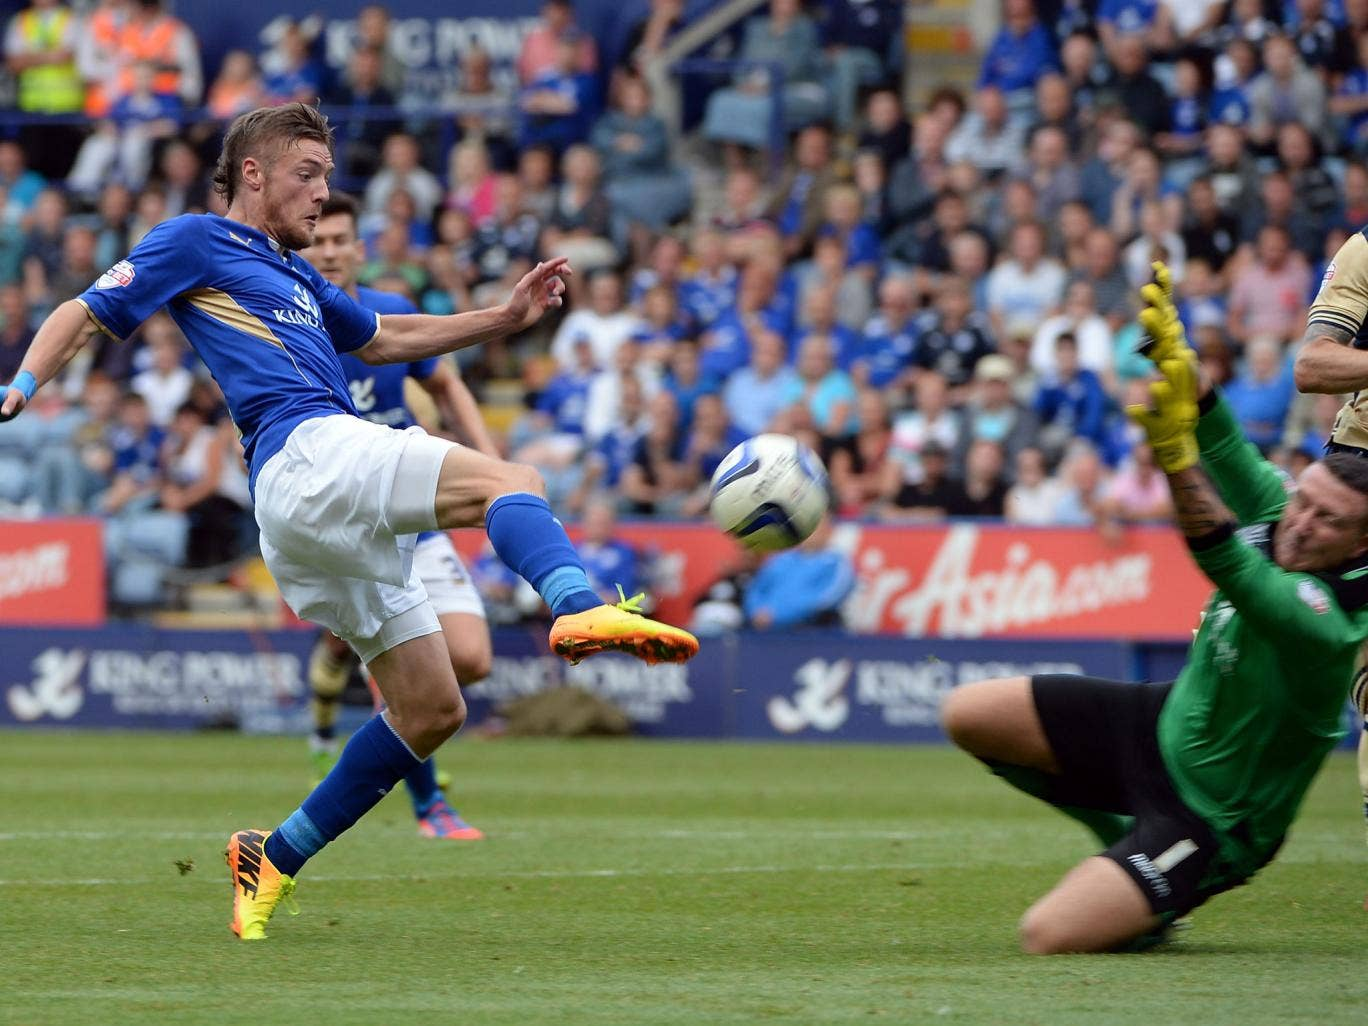 Leicester's Jamie Vardy with a shot against Leeds United